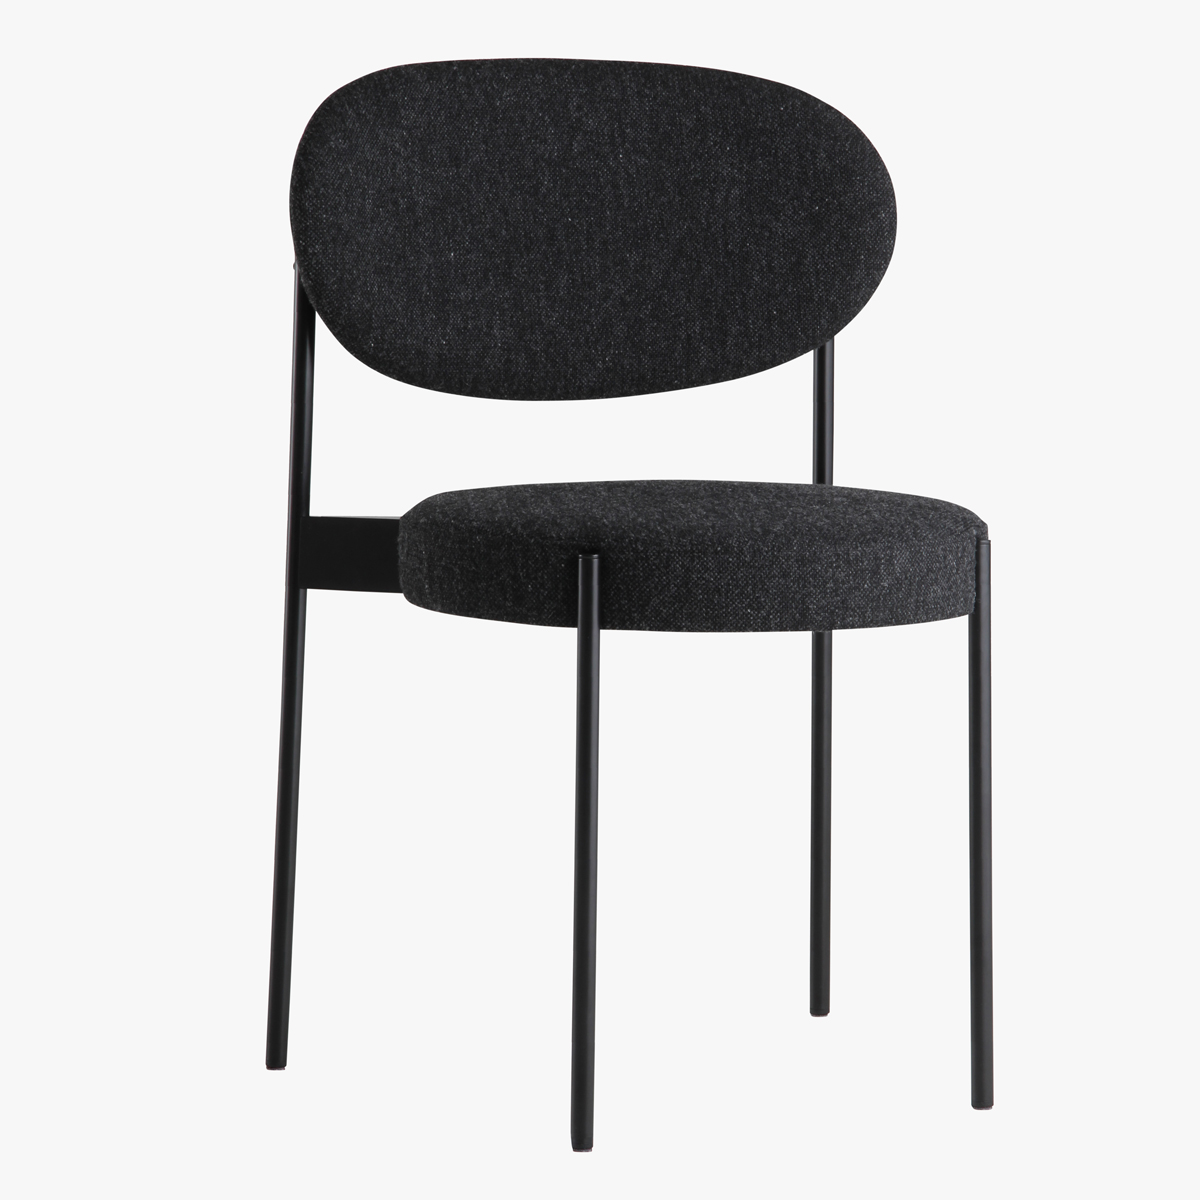 Series 430 Chair (Hallingdal 180) - LR